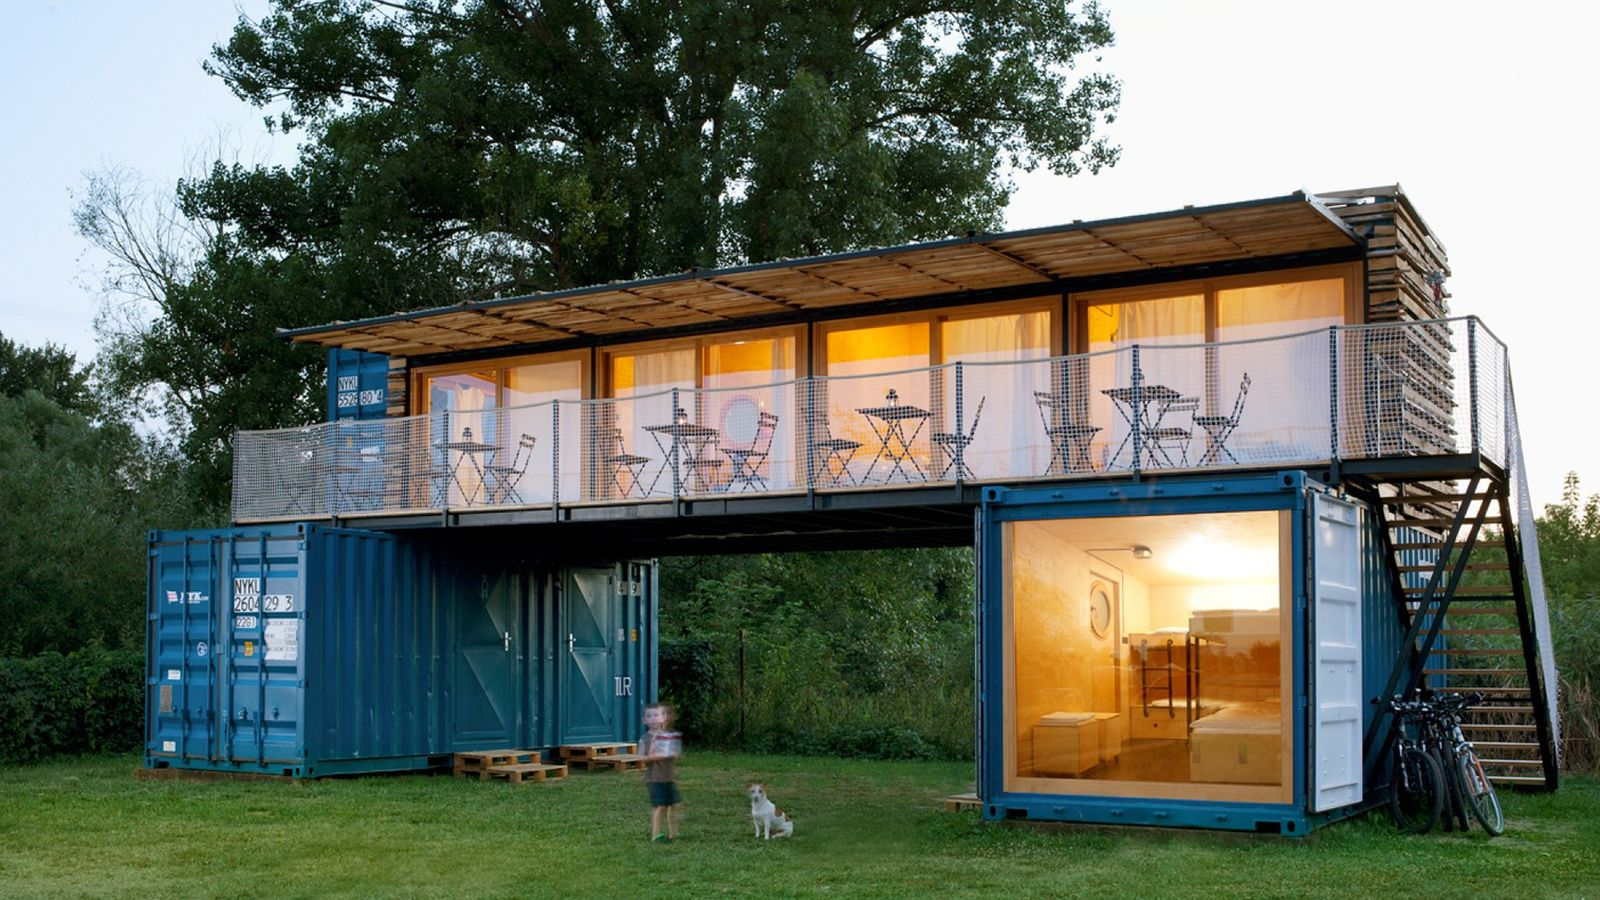 Shipping Container Hotel Offers Eco Friendly Getaway For Surfing Nomads Curbed